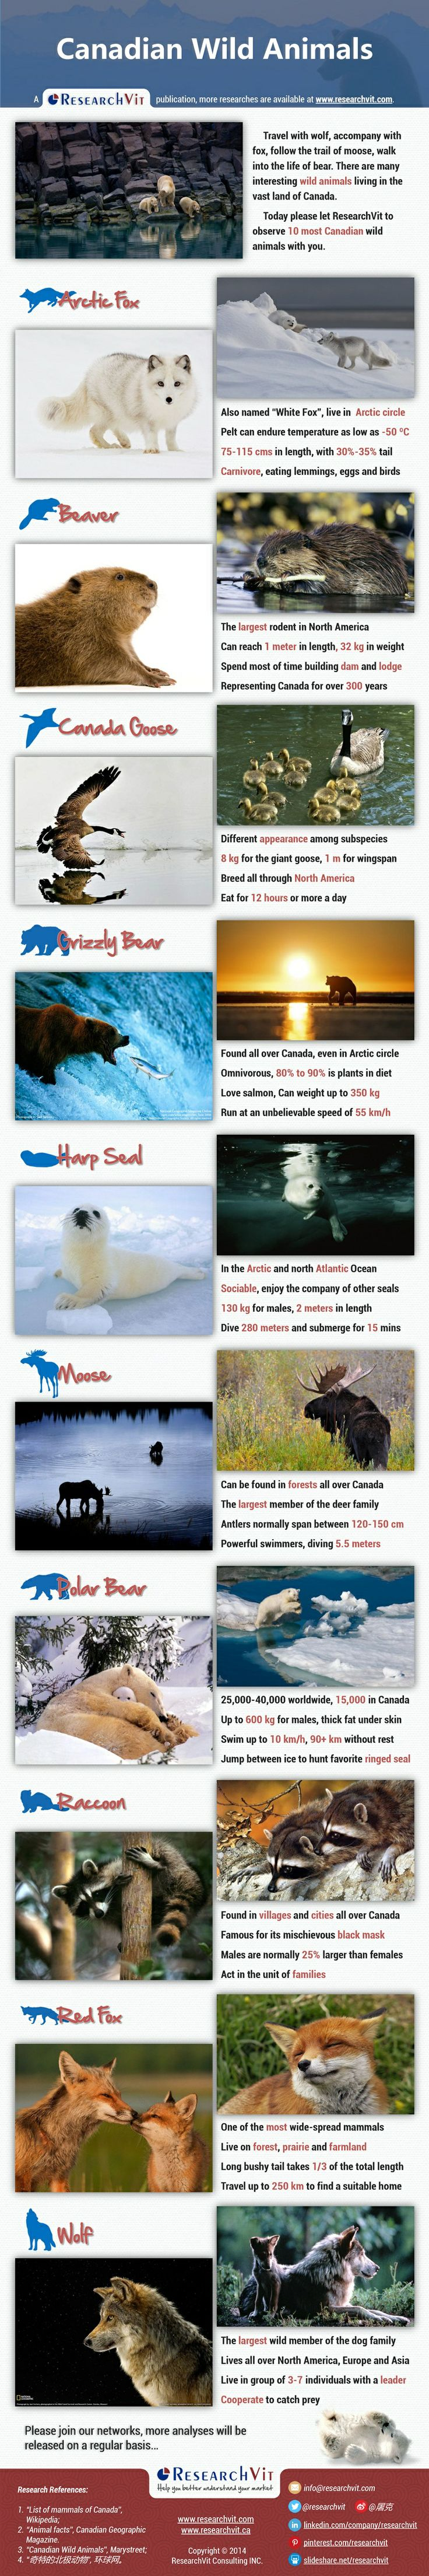 Canadian Wild Animals: Travel with wolf, accompany with fox, follow the trail of moose, walk into the life of bear. There are many interesting wild animals living in the vast land of Canada. Today please let ResearchVit to observe 10 most Canadian wild animals with you.